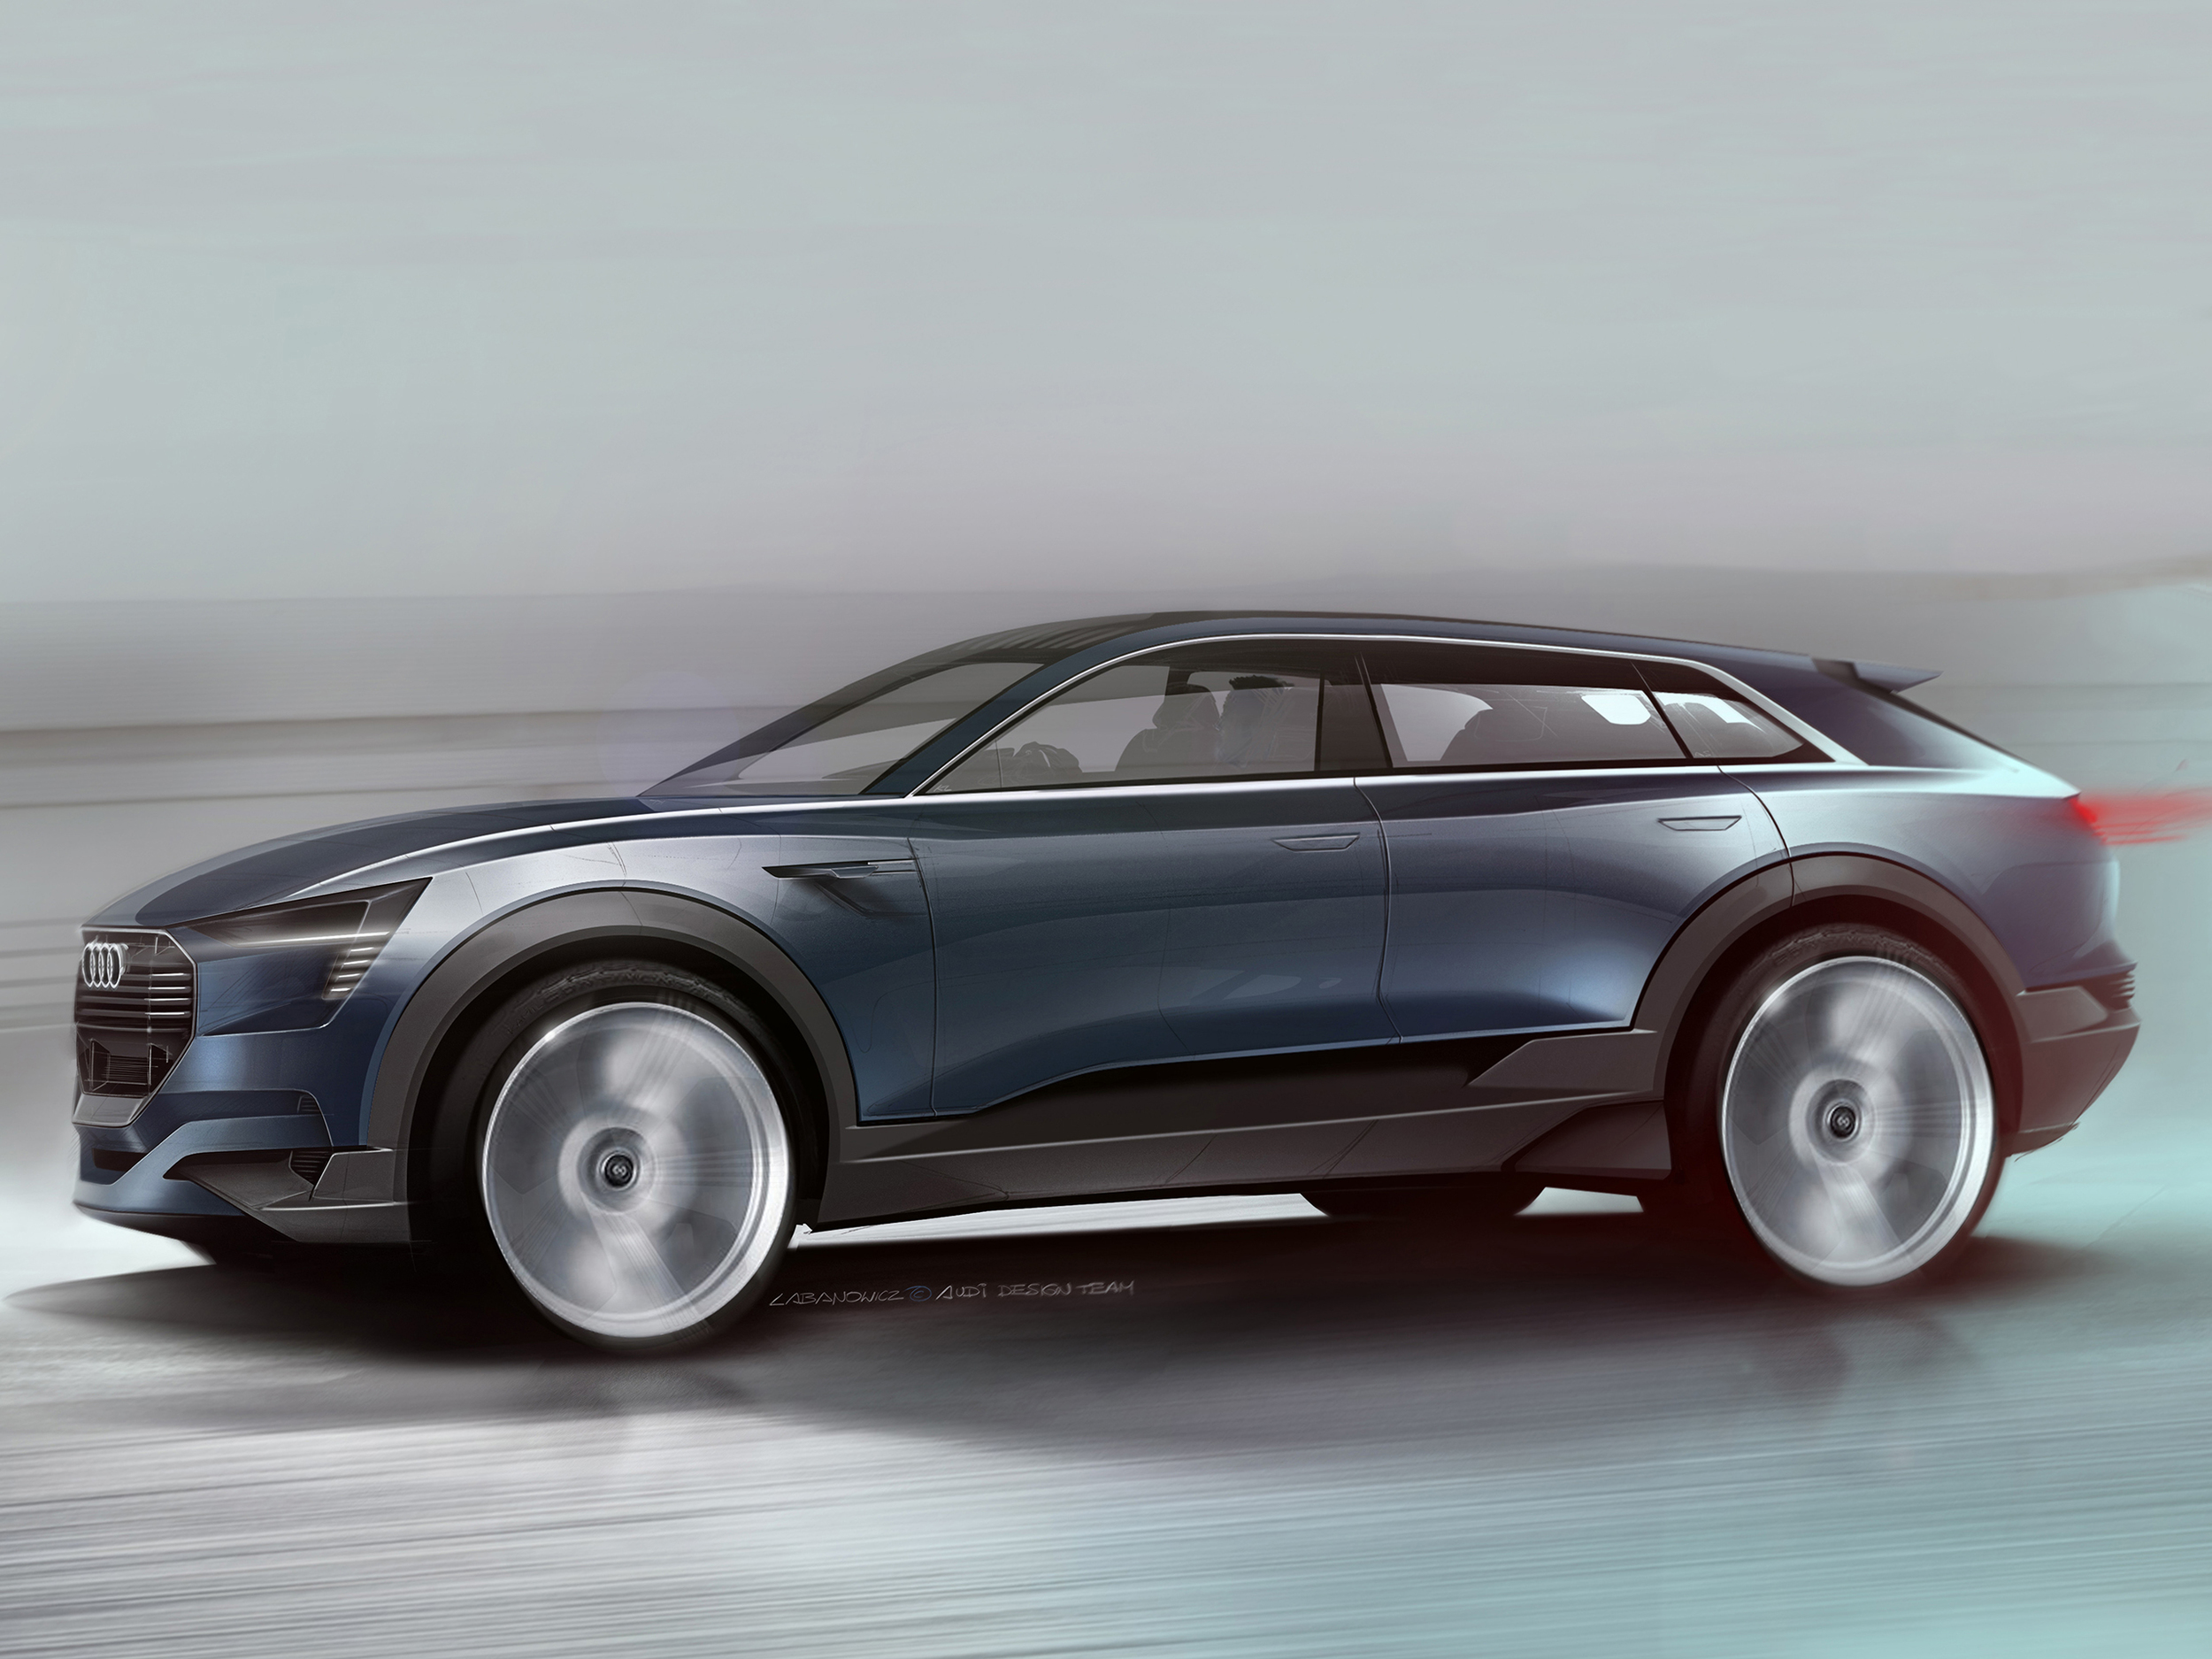 Audi e-tron quattro concept set for Frankfurt debut